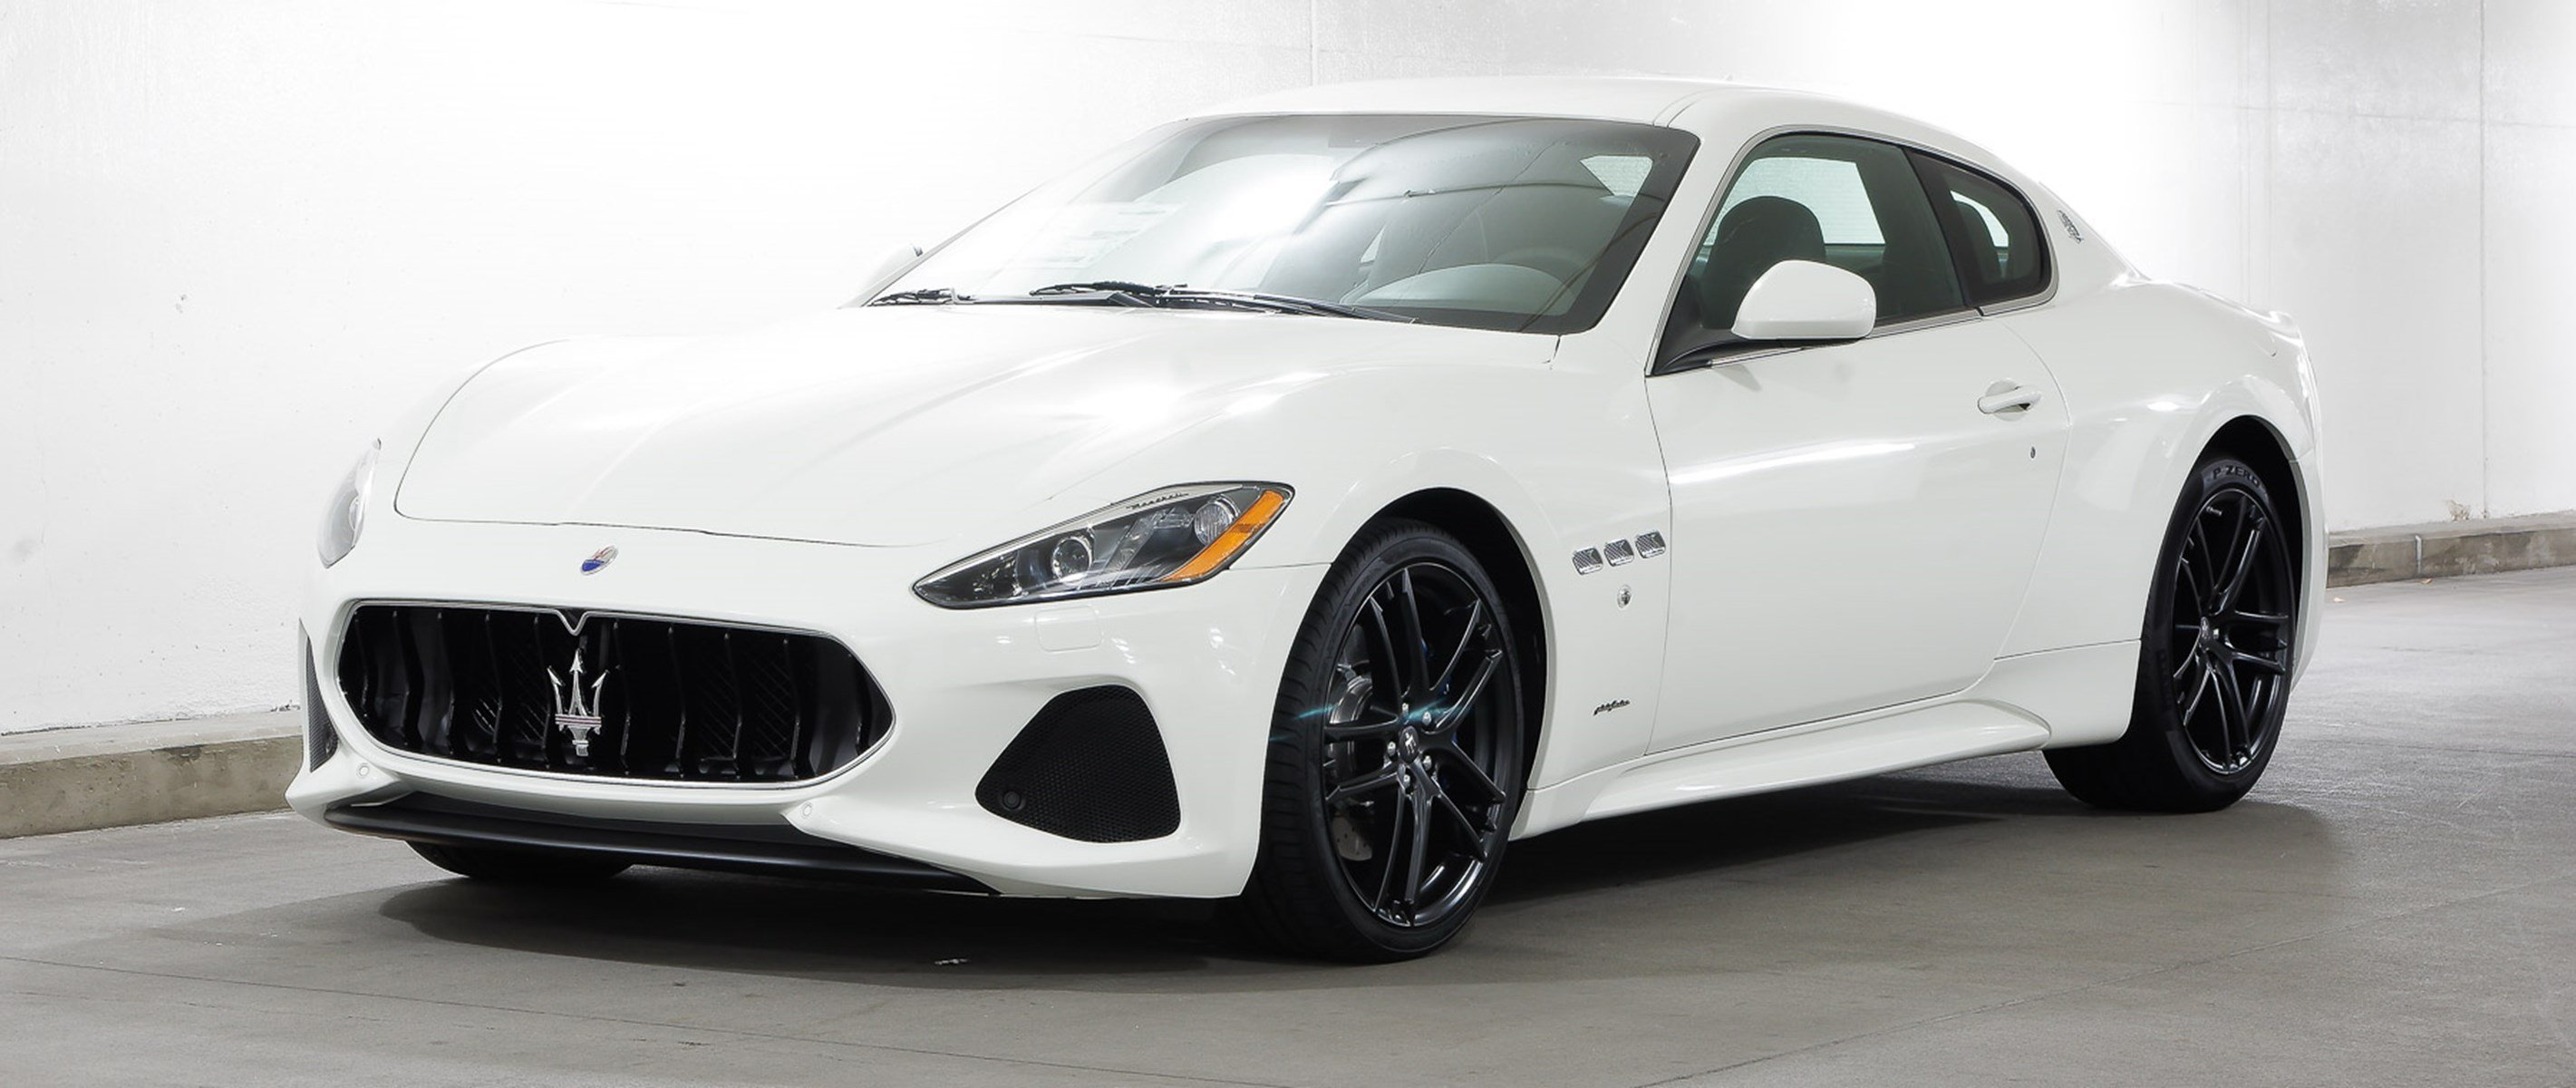 New 2018 Maserati GranTurismo Sport 2dr Car in Salt Lake City